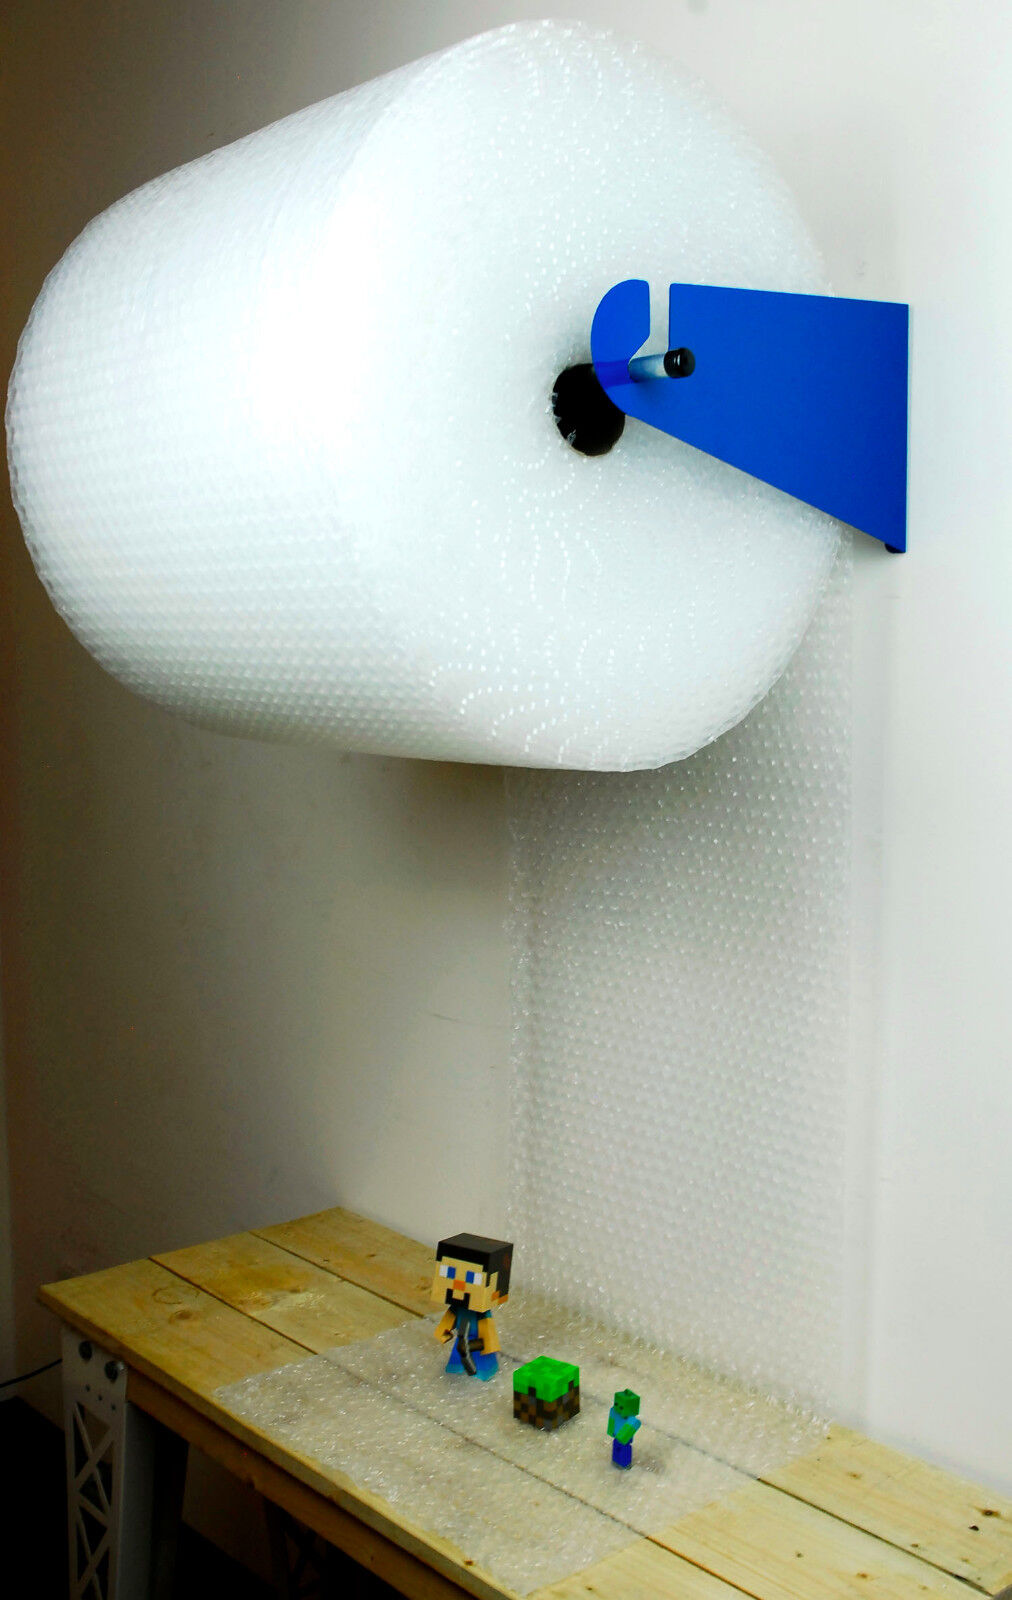 Bubble Wrap Roll Wall Ceiling Mount Dispenser Kit Tape